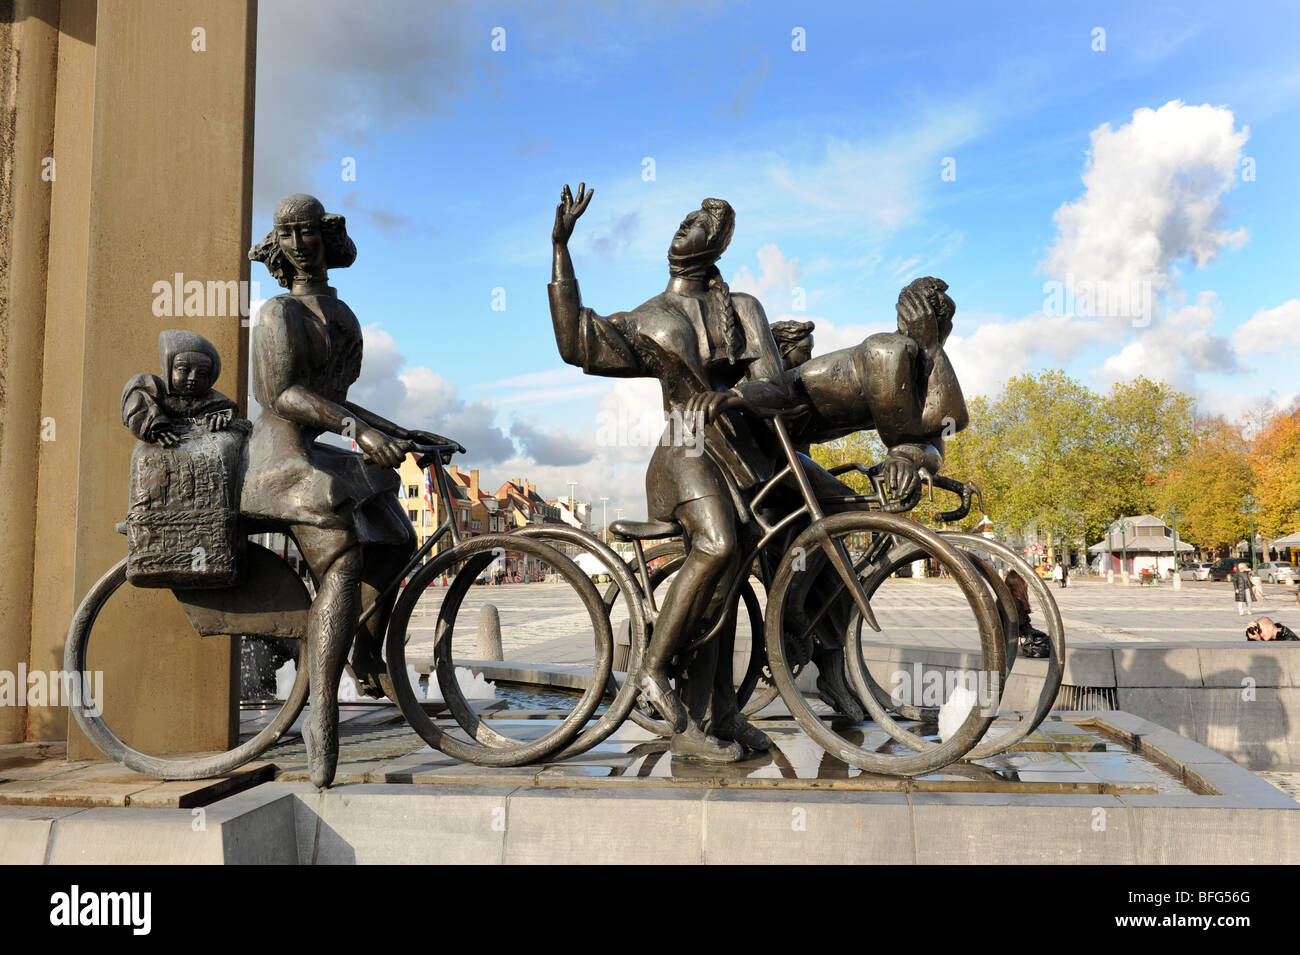 Fountain and statues in The Zand square at Bruges in Belgium Europe - Stock Image